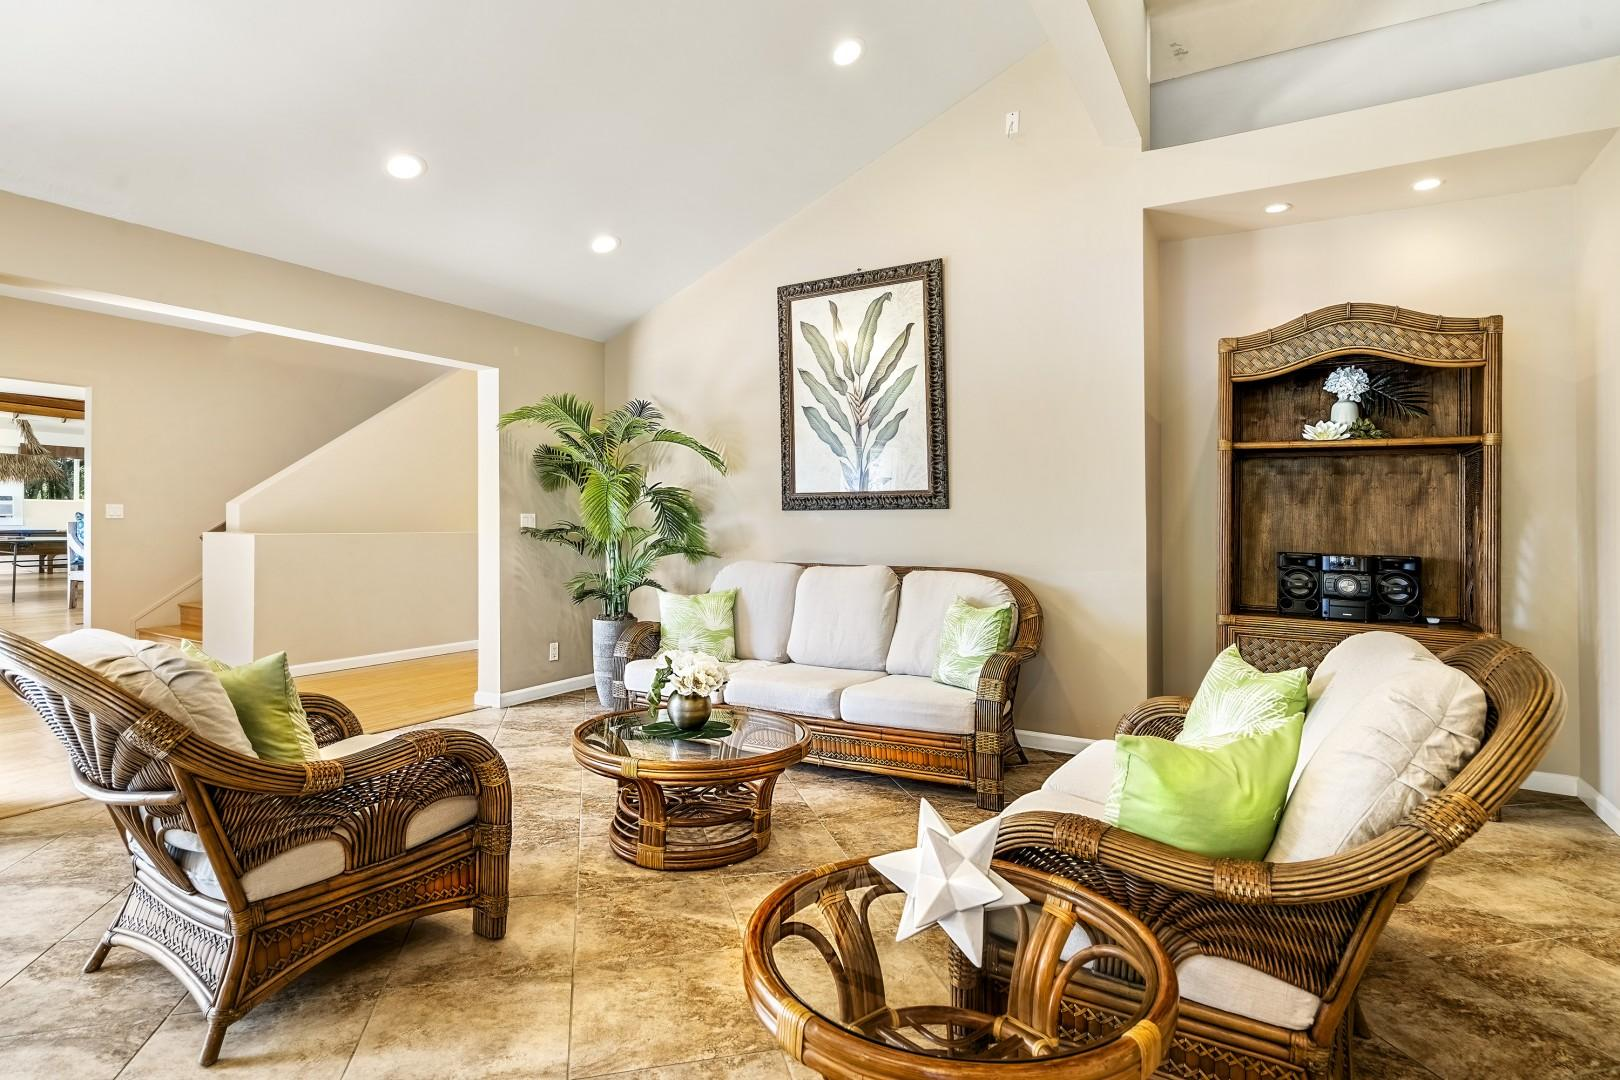 Professionally decorated this home truly embraces Hawaii!